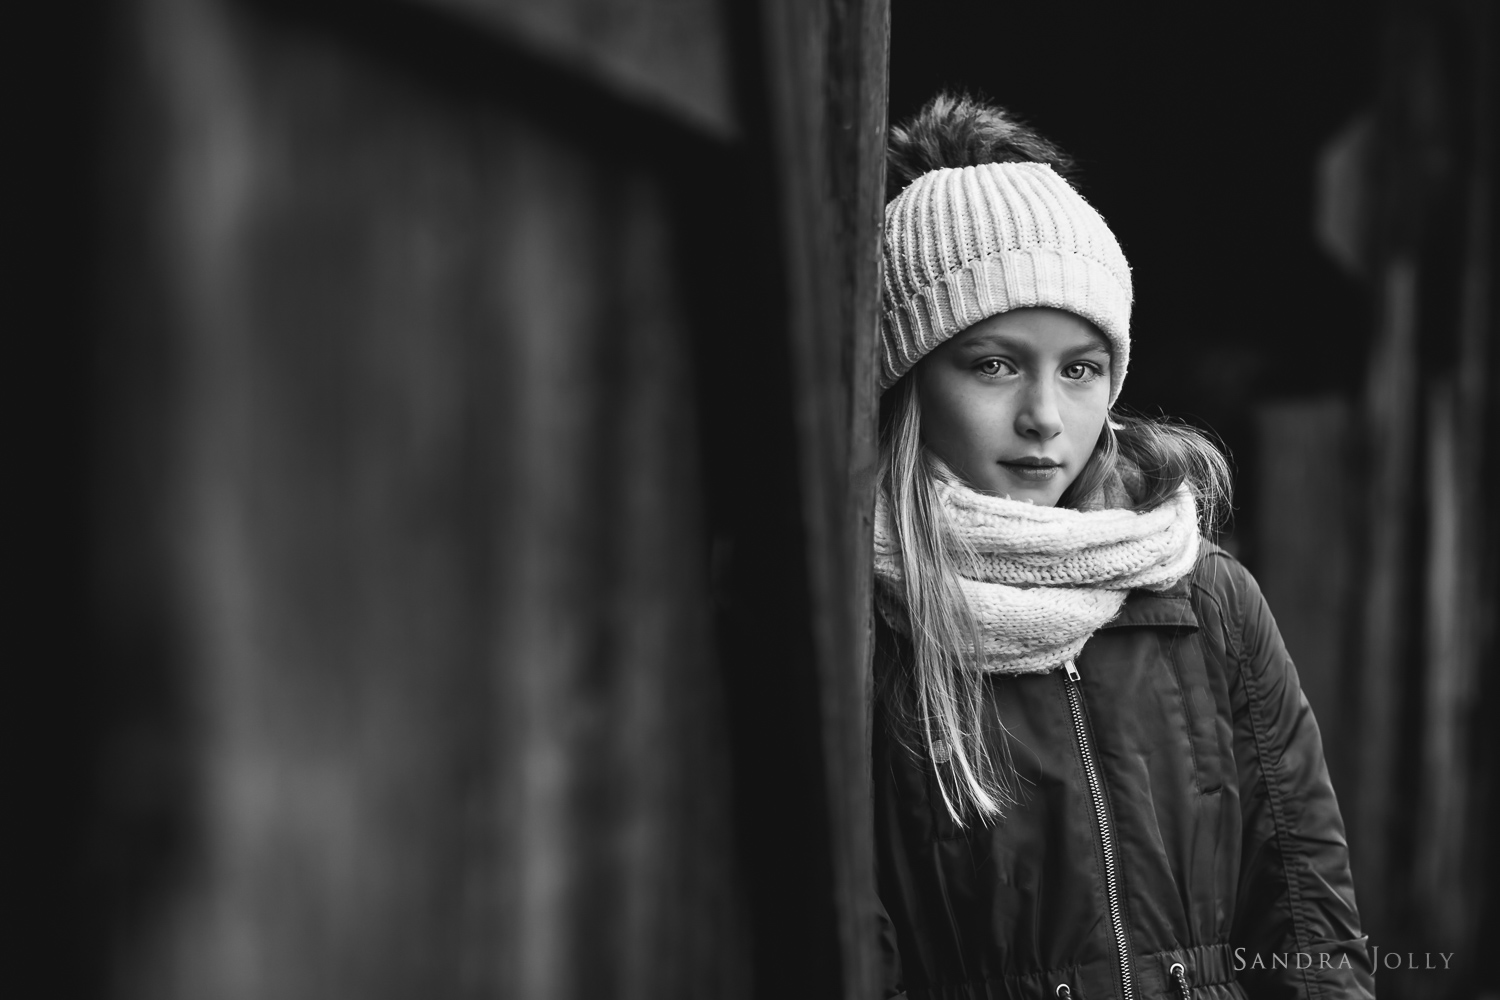 Black-and-white-image-of-a-girl-in-a-hat-by-Sandra-Jolly-barnfotograf.jpg